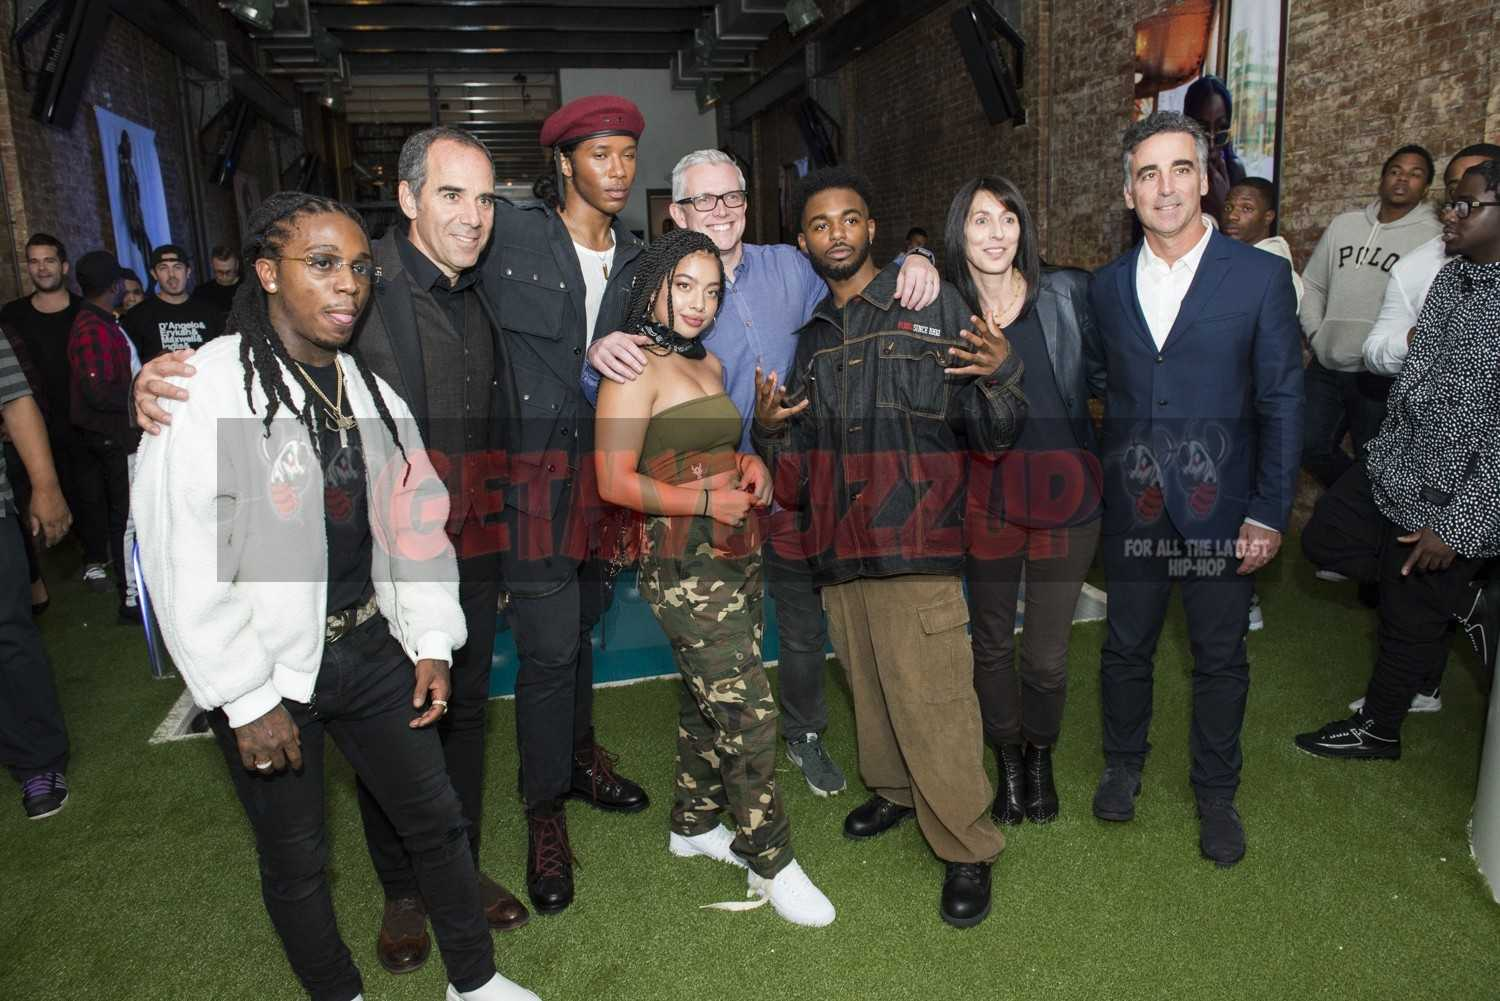 """JACQUEES, JUSTINE SKYE, KIANA LEDE, PRINCE CHARLEZ & MARCO MCKINNIS PERFROMED AT REPUBLIC RECORDS & MCINTOSH GROUP'S """"DIRECT CONNECTION"""" SERIES R&B SHOWCASE [PHOTOS]"""